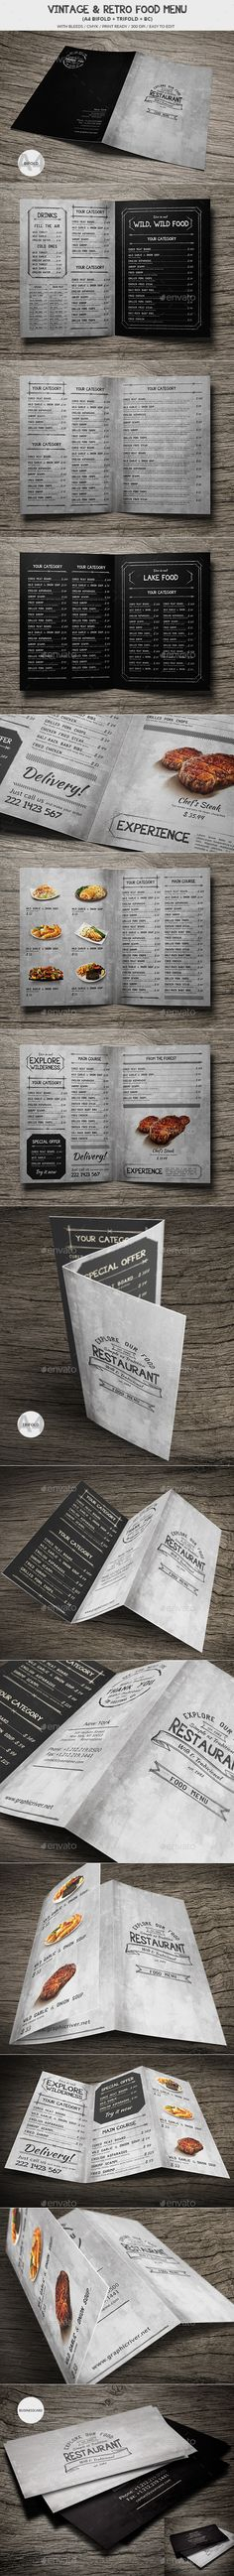 Vintage And Retro Food Menu - Food Menus Print Templates Download here : https://graphicriver.net/item/vintage-and-retro-food-menu/19287957?s_rank=143&ref=Al-fatih